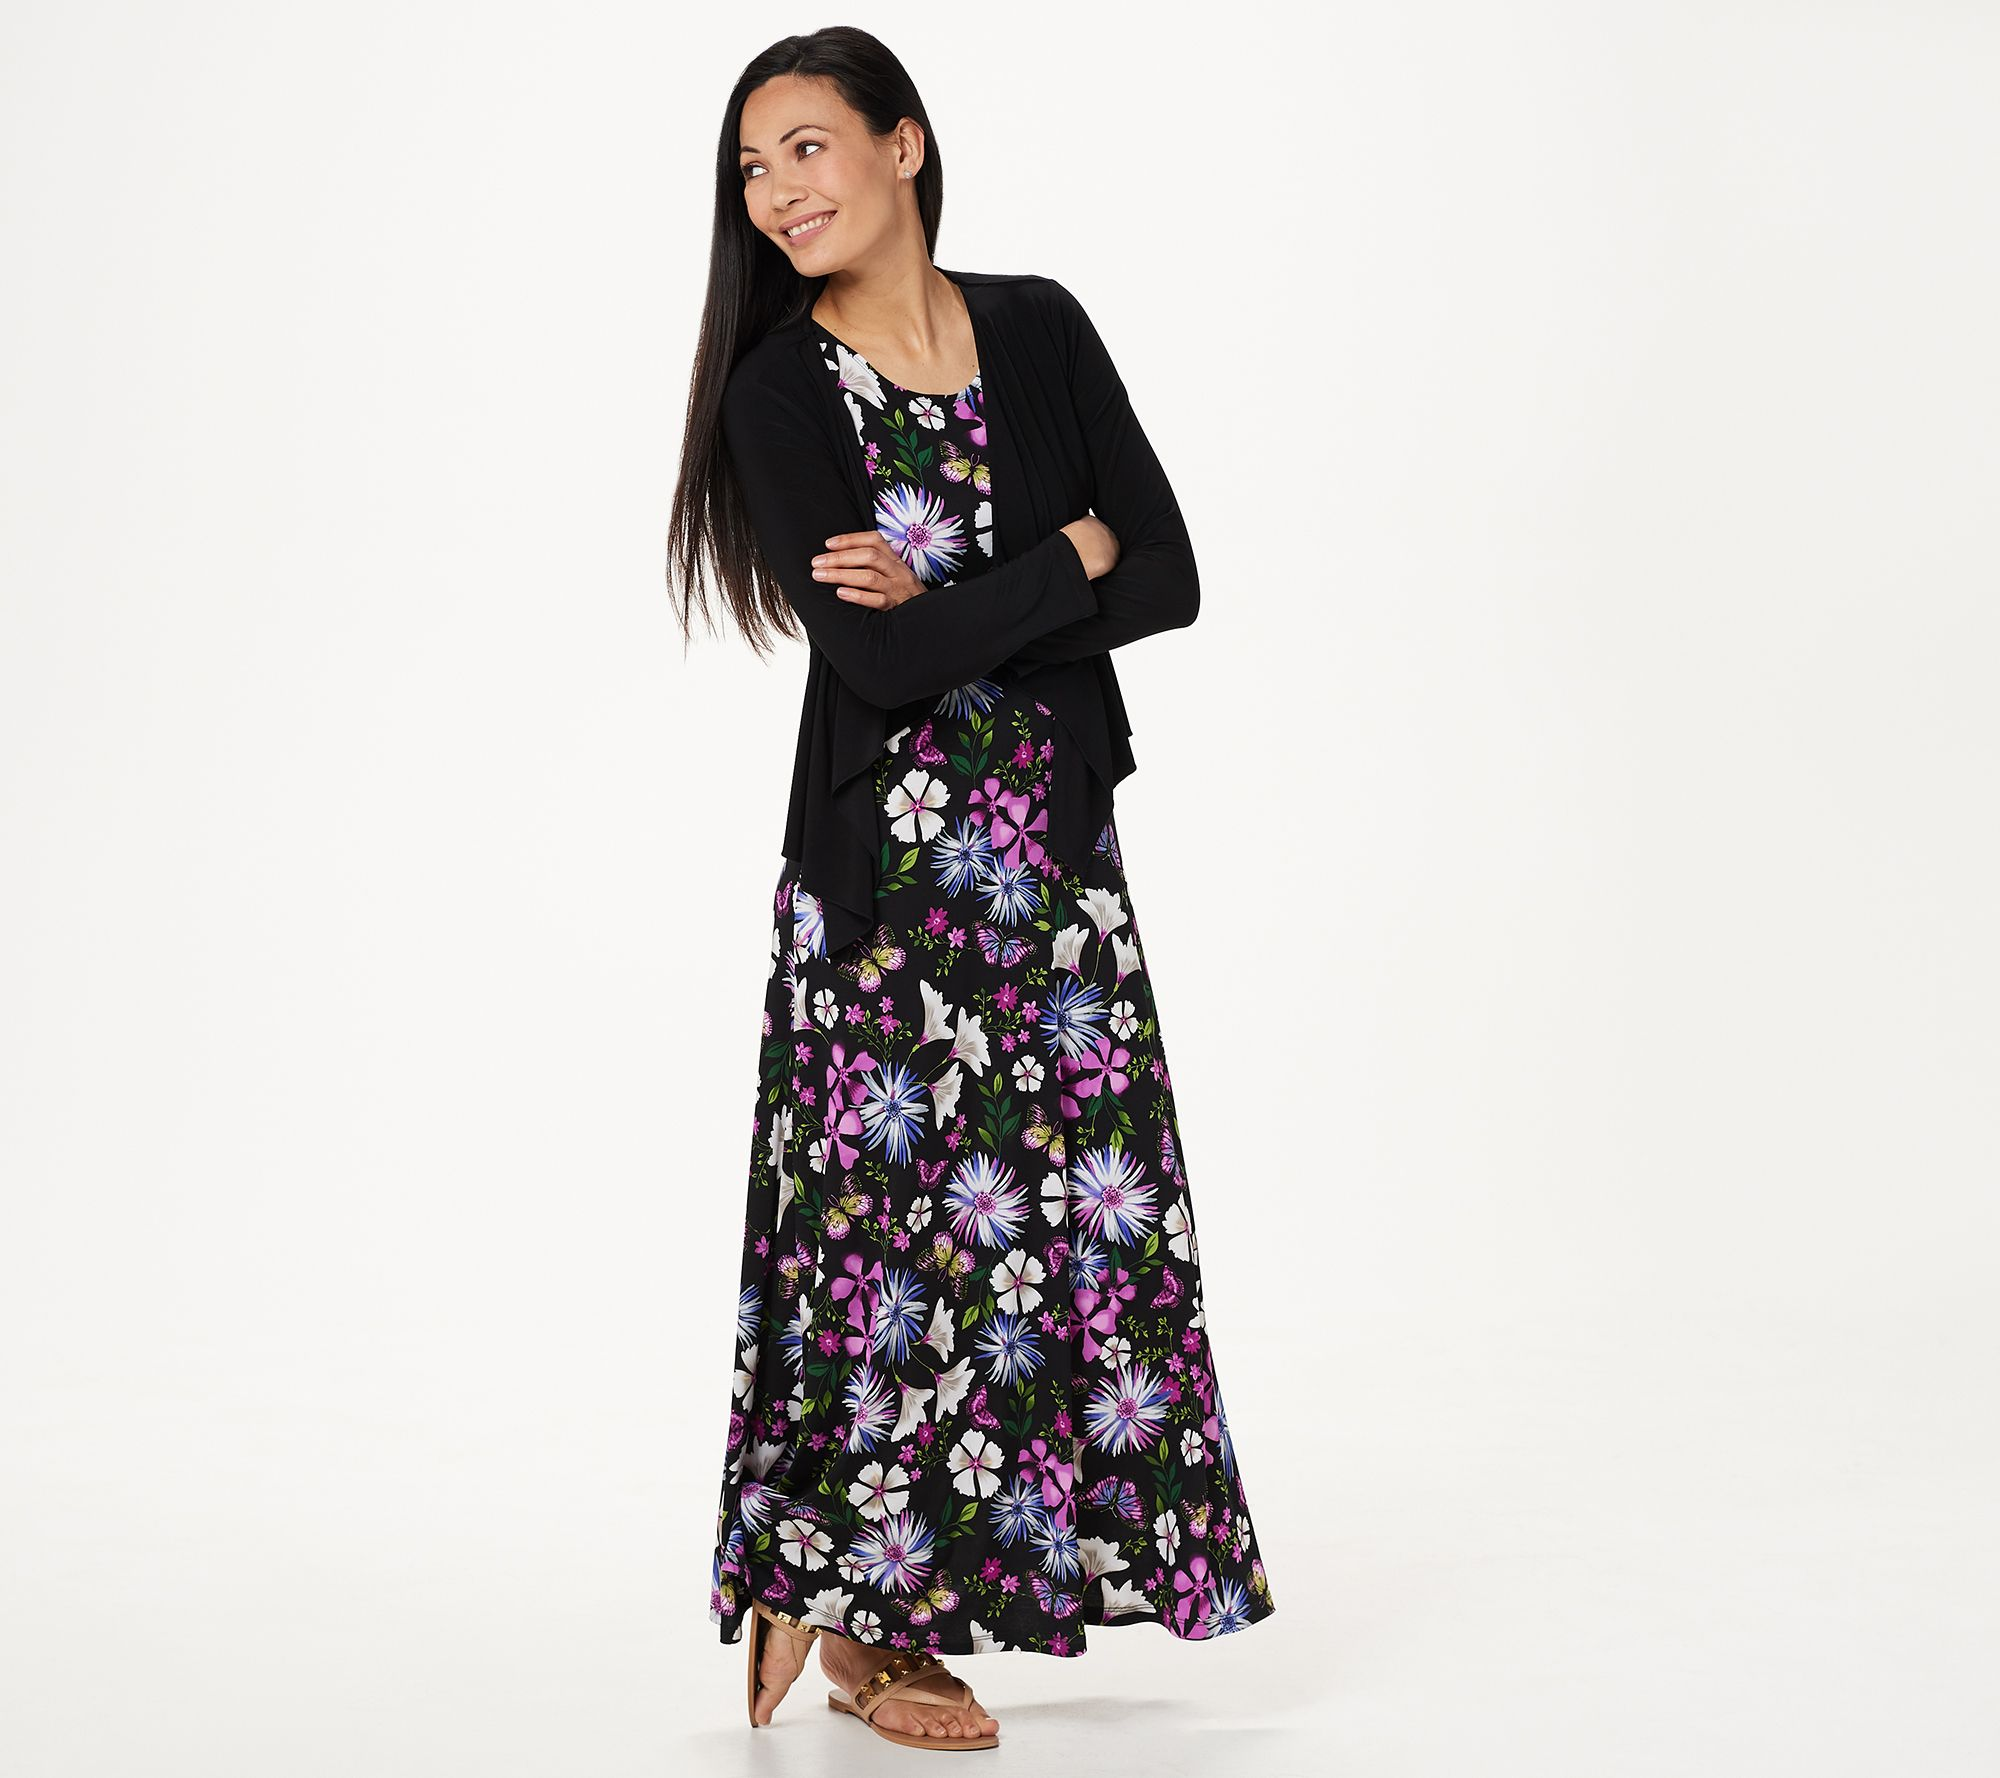 06f549dc8921 Attitudes by Renee Petite Printed Maxi Dress with Cardigan - Page 1 —  QVC.com